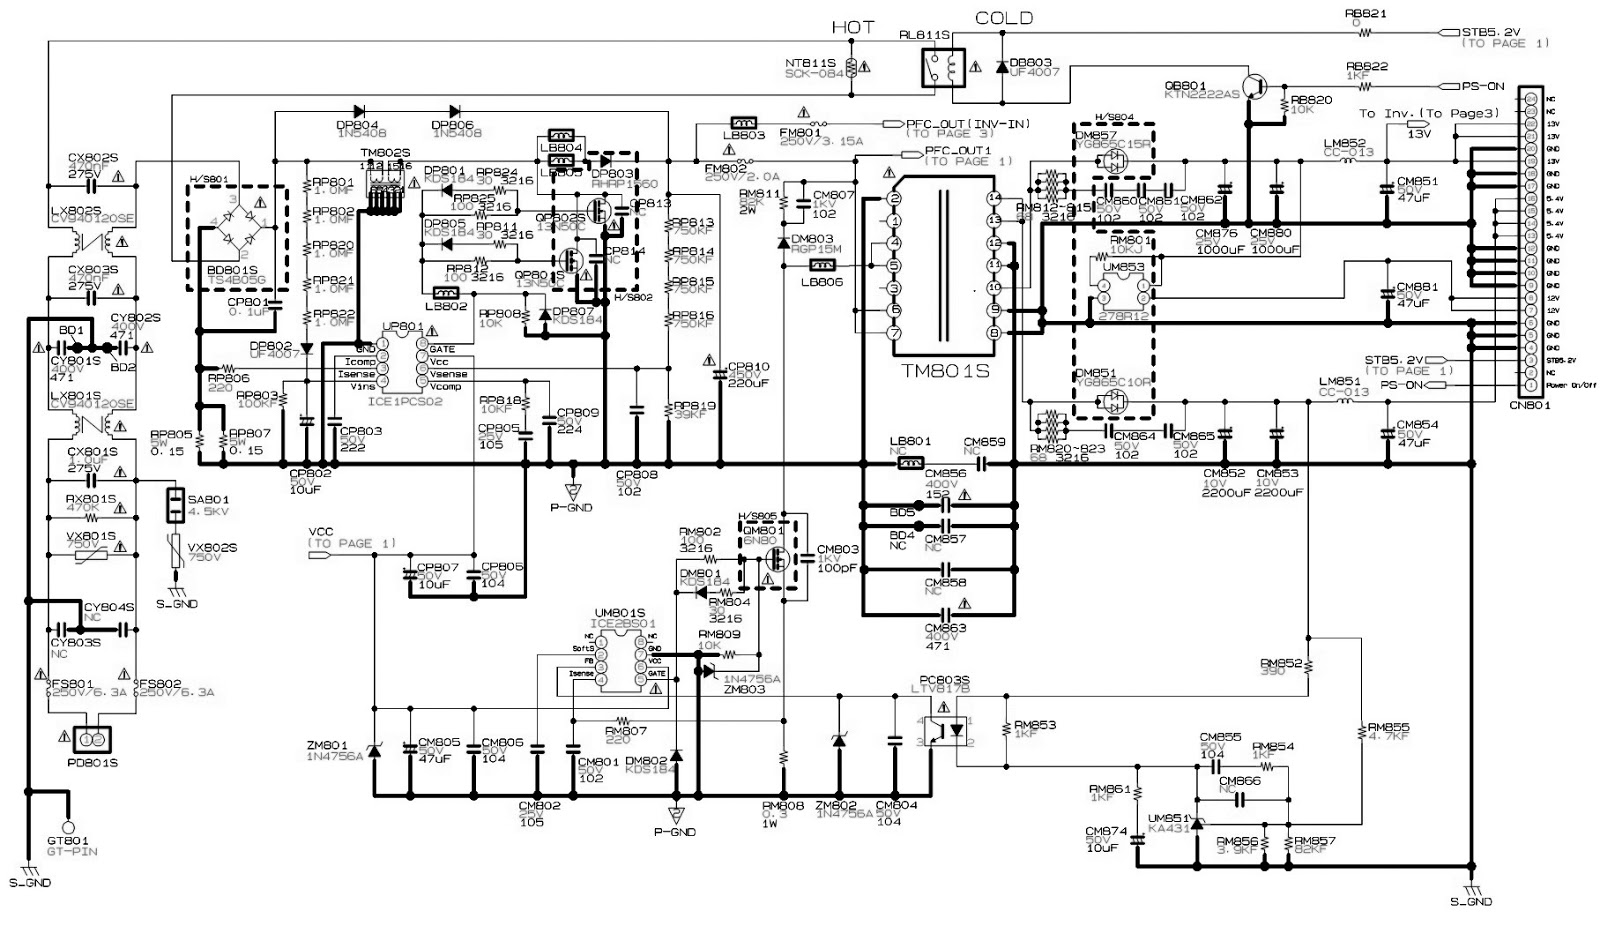 hight resolution of smart tv wiring diagram wiring diagram today smart tv wiring diagram for smart tv wiring diagram